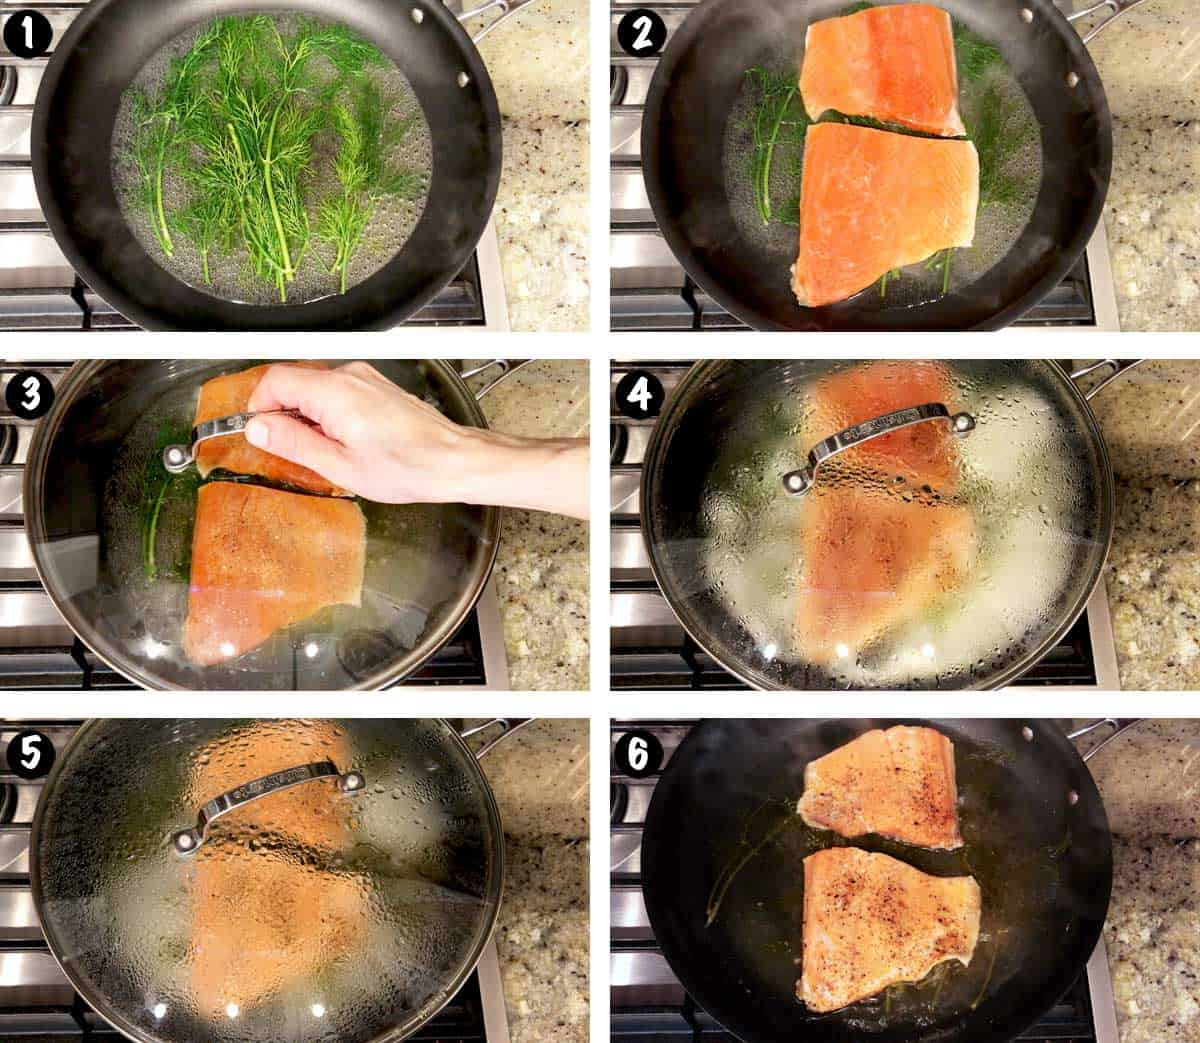 A photo collage showing the steps for poaching salmon.